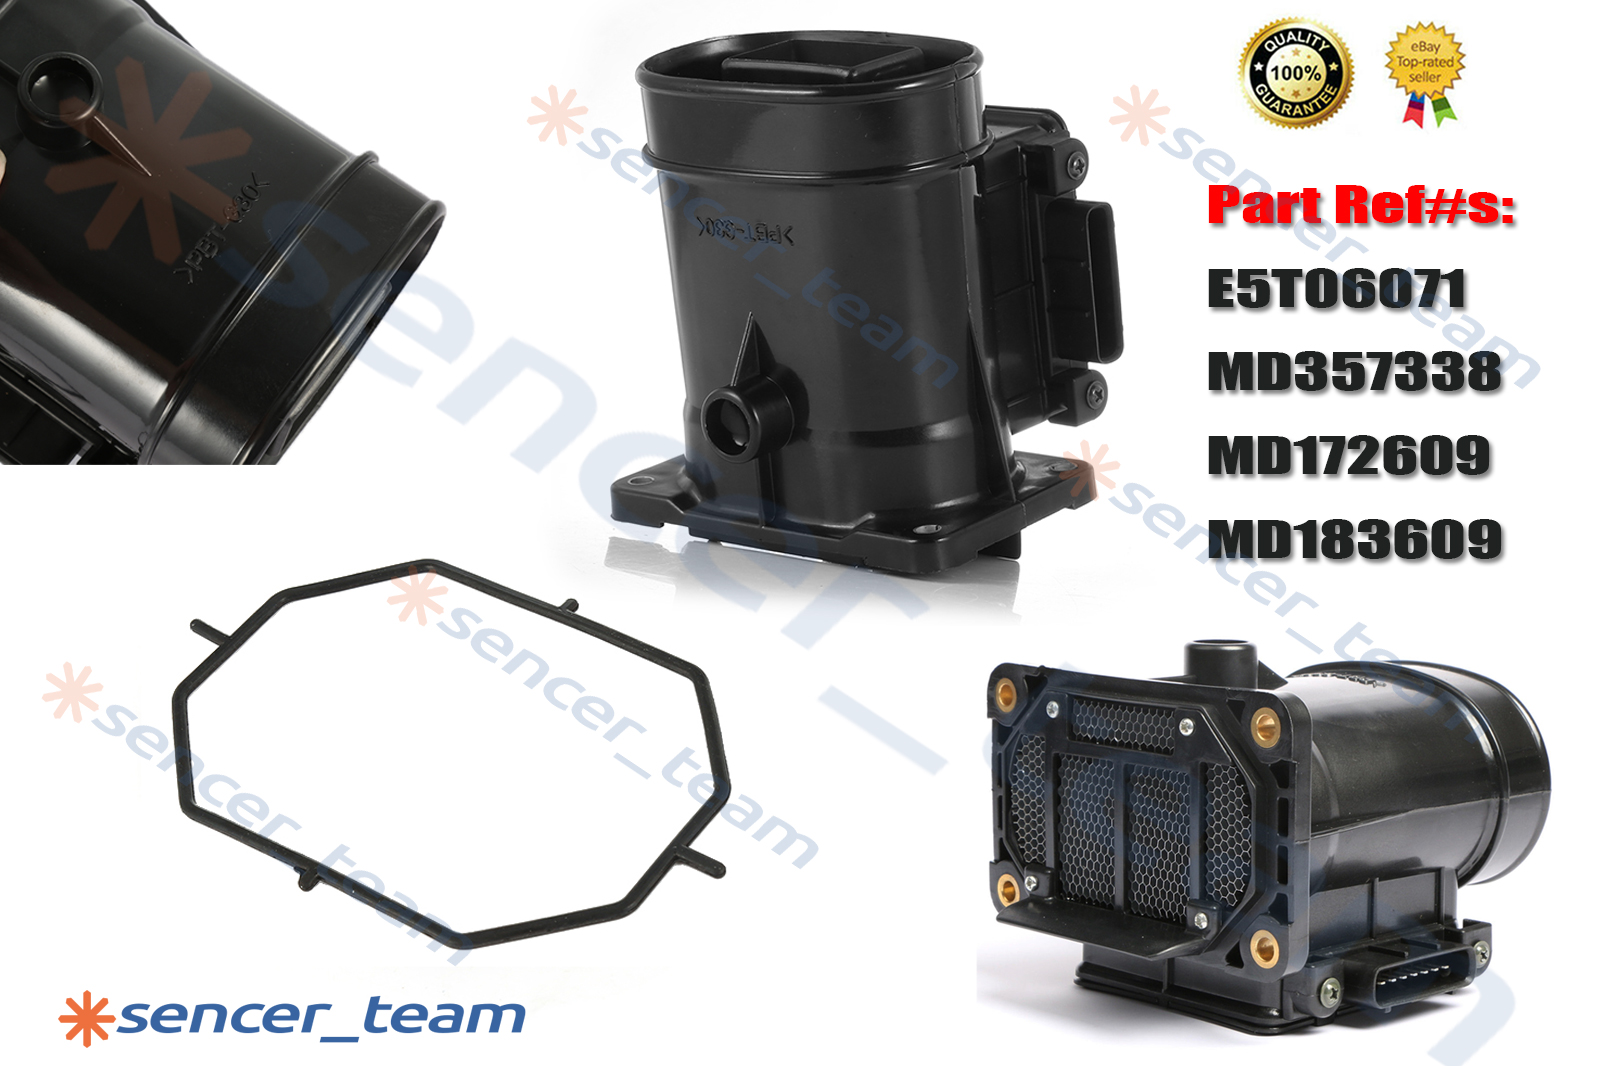 For Mitsubishi Pajero Montero L200 L400 90-14 MAF Mass Air Flow Meter MD183609